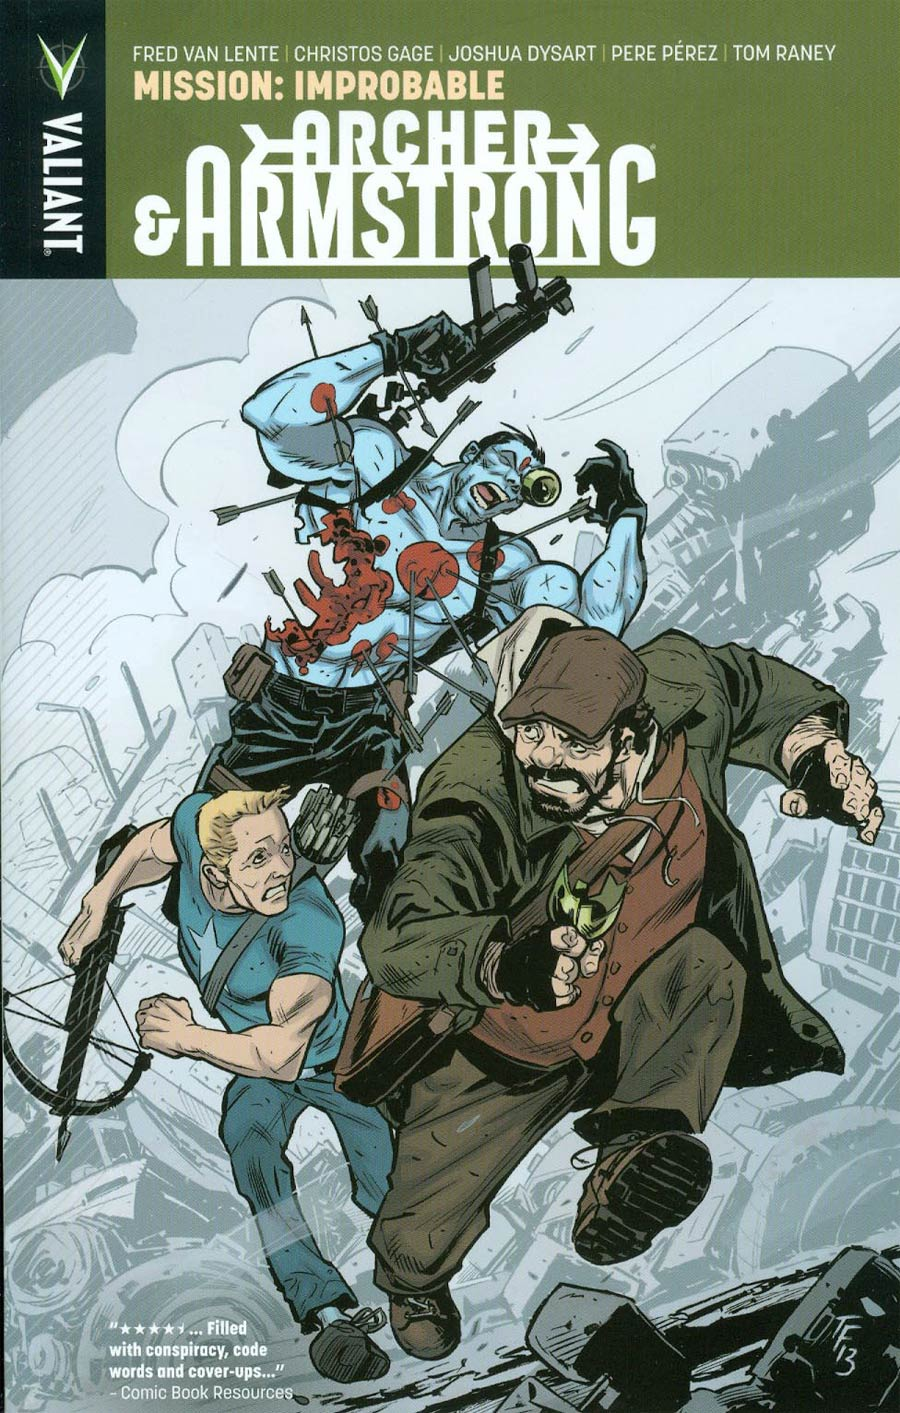 Archer & Armstrong Vol 5 Mission Improbable TP